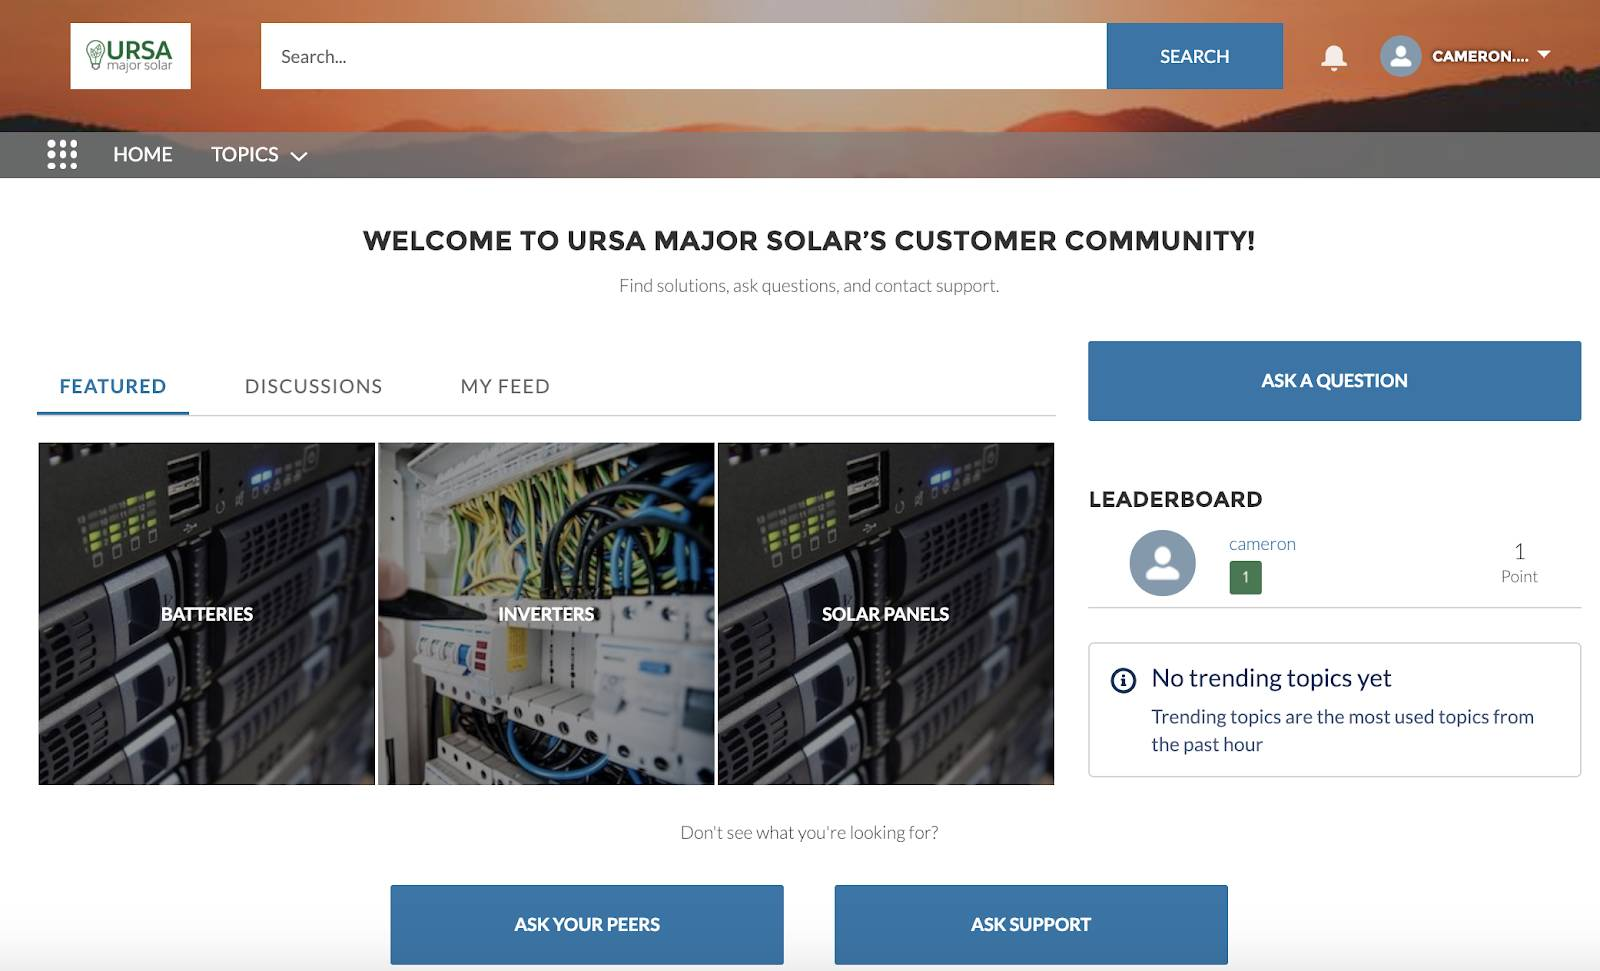 Preview of Ursa Major Solar's community